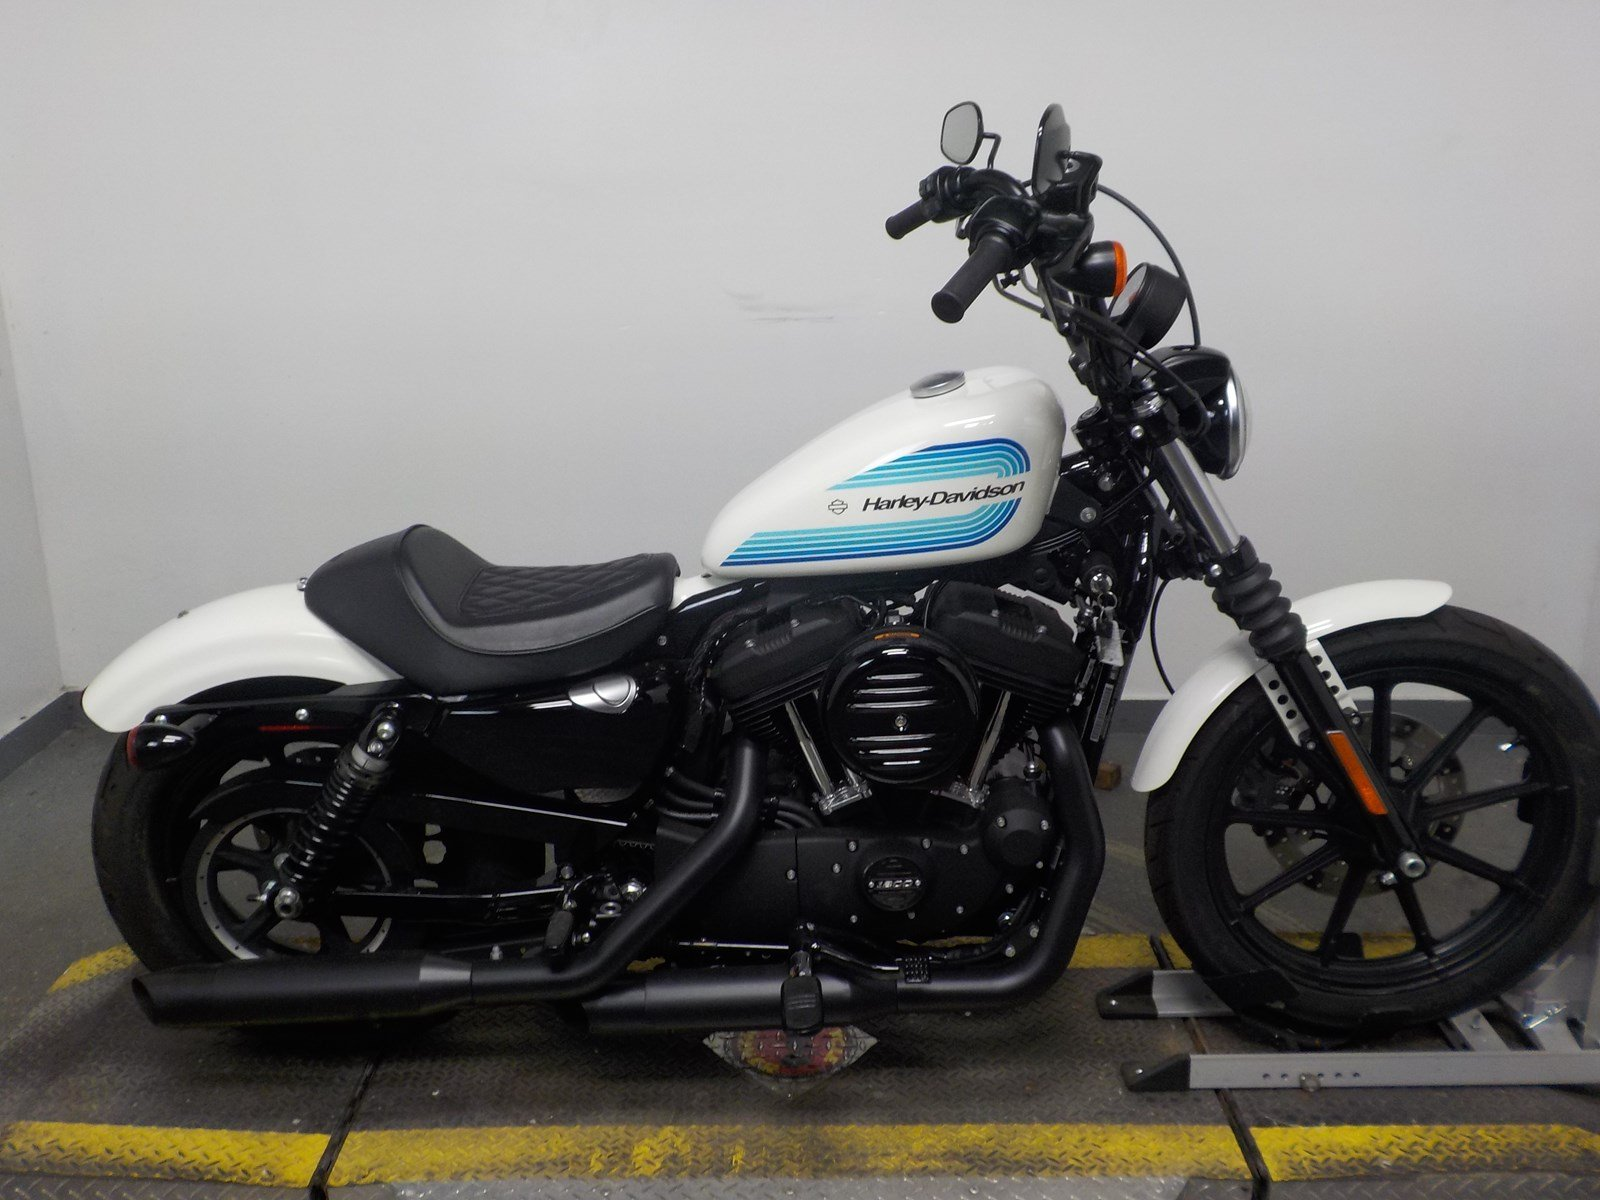 Pre-Owned 2019 Harley-Davidson Sportster Iron 1200 XL1200NS Sportster